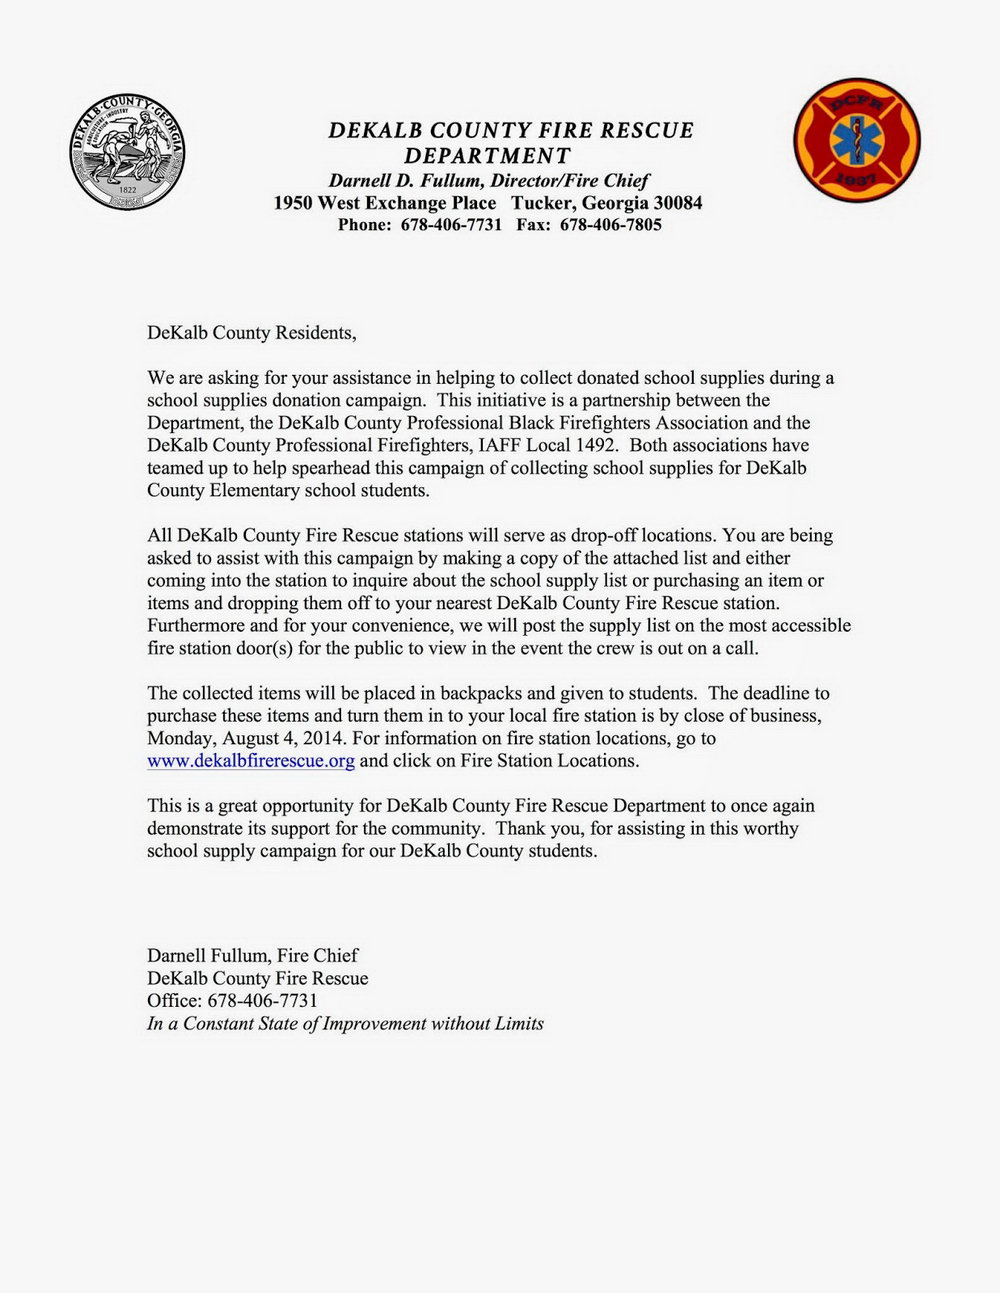 Fire Department Donation Request Letter Template